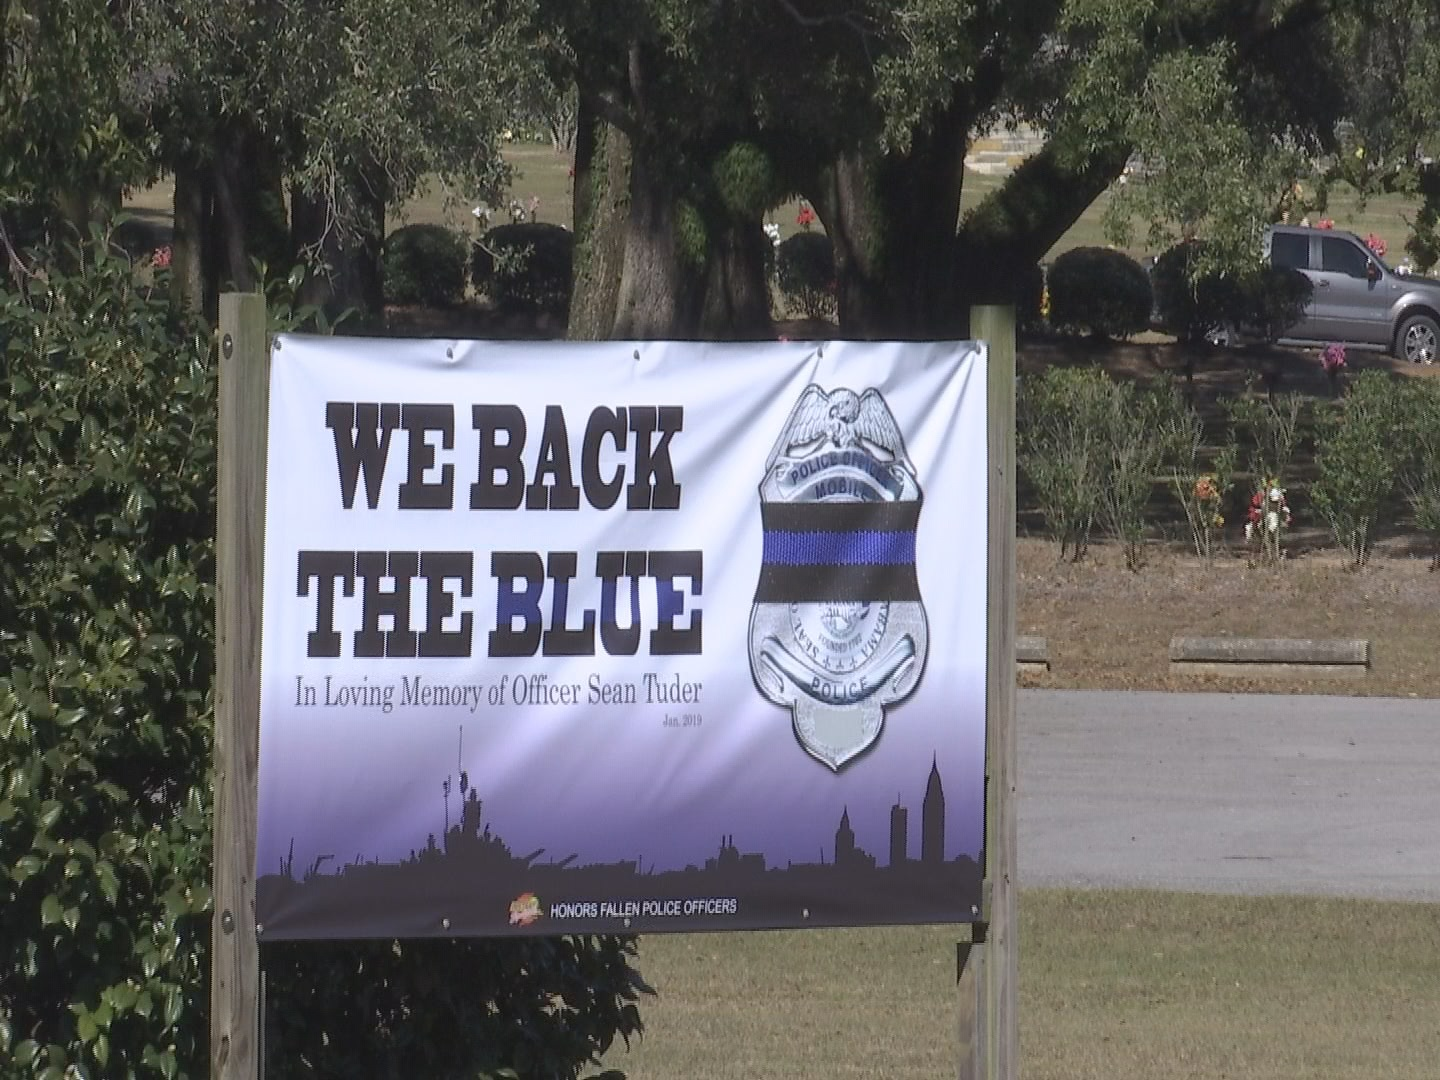 back the blue funeral home_1548351718486.jpg.jpg